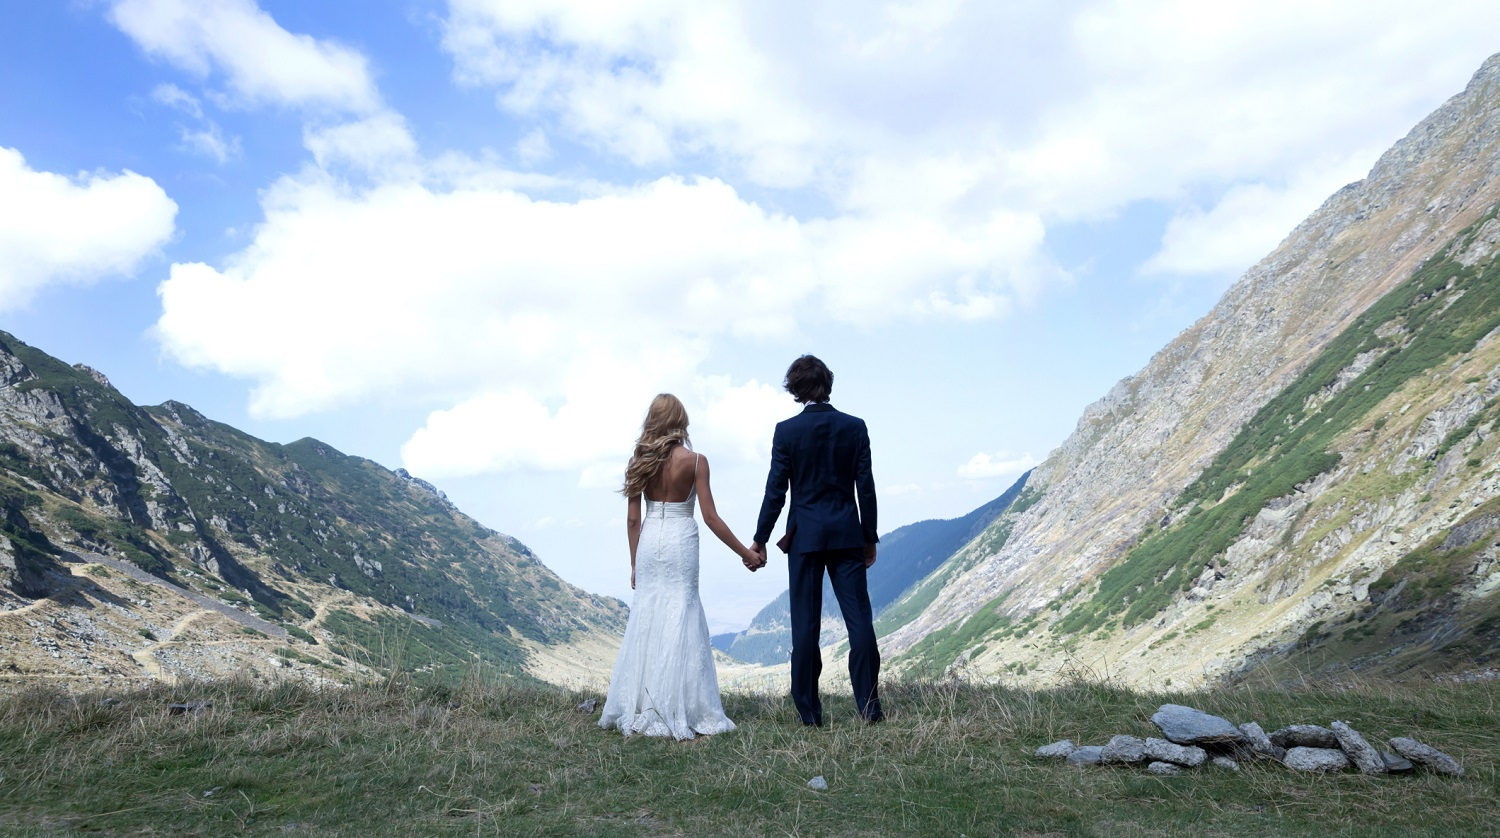 Mountain Wedding | Sky full of love | Bride and Groom holding hands looking over a valley between two steep cliffsides